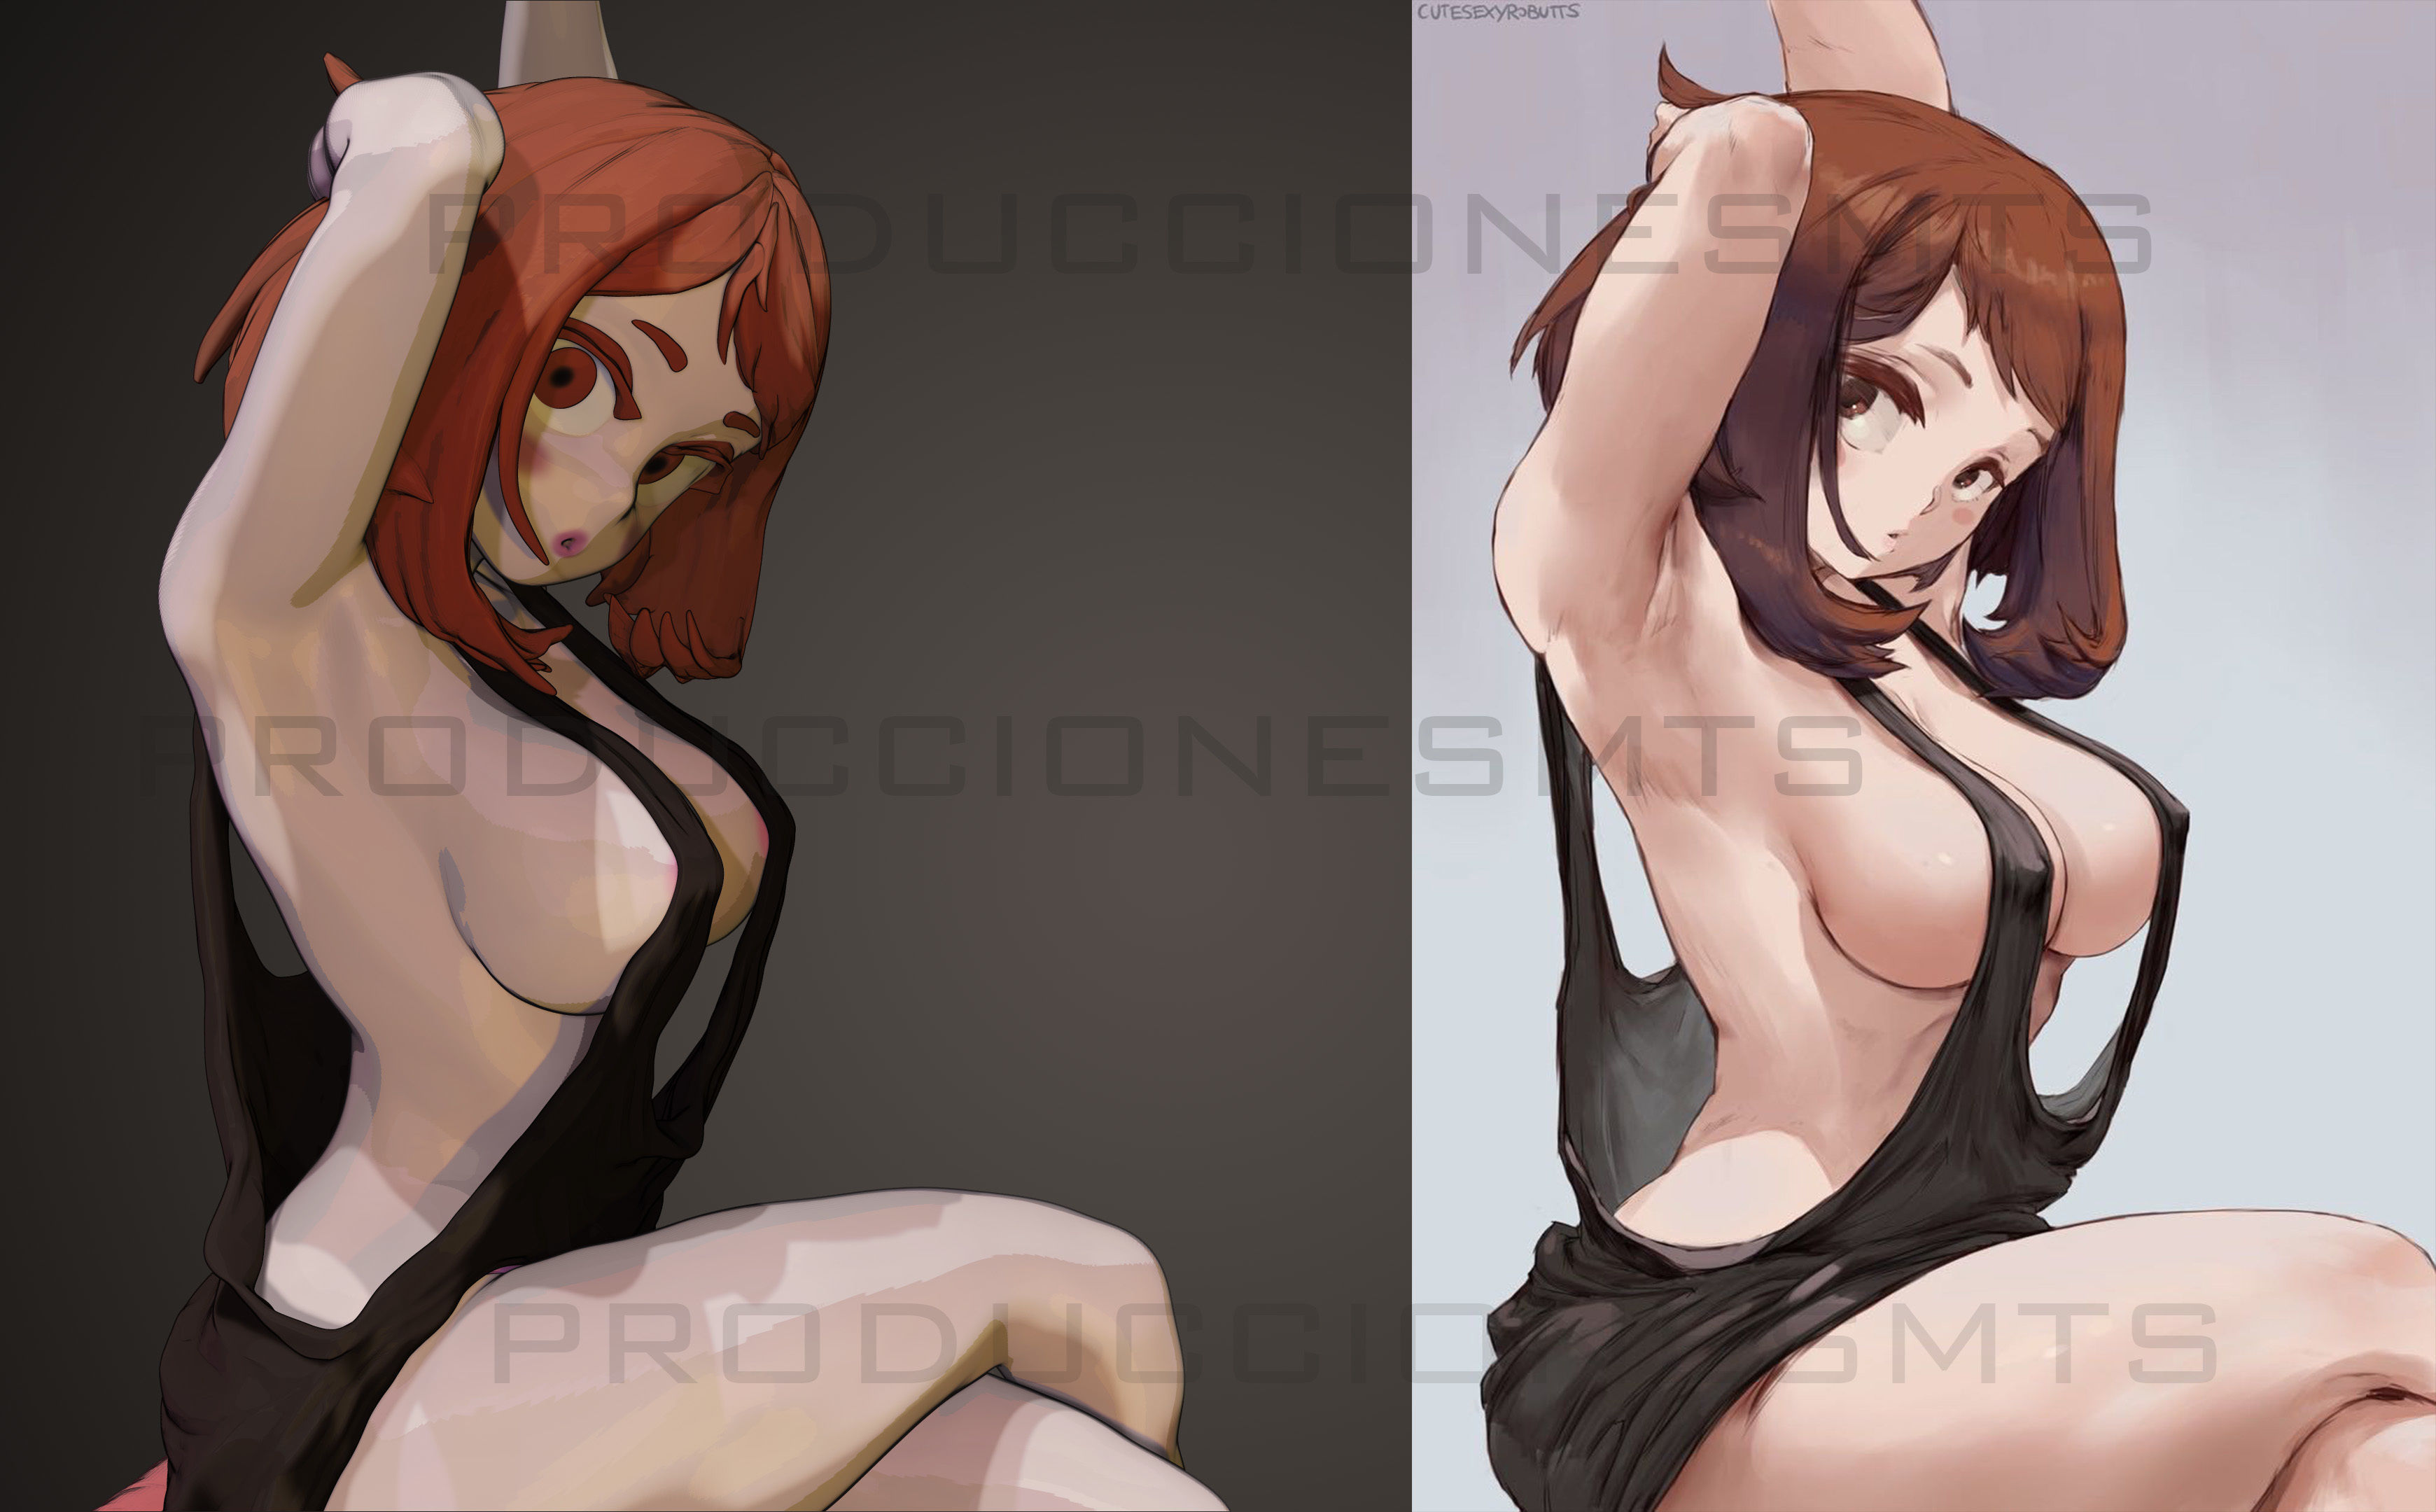 sexy uraraka boku no hero - one version body